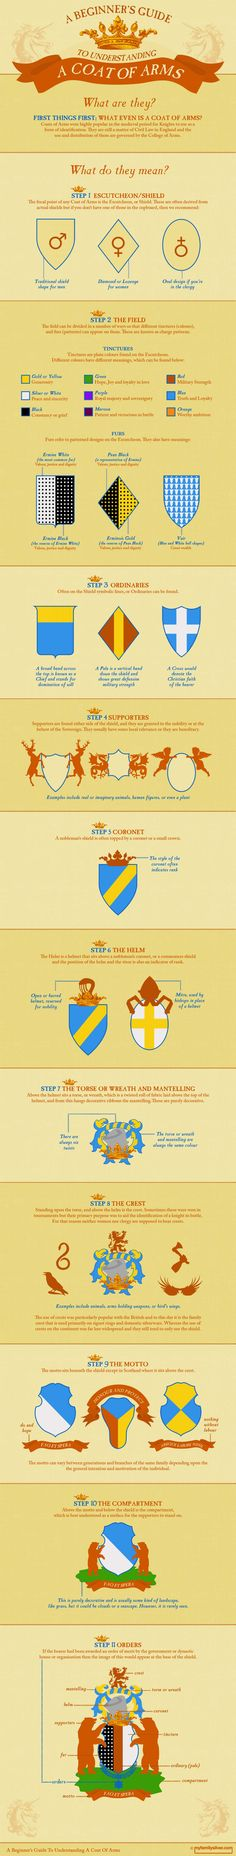 Coats Of Arms as the Most Unique and Oldest Logo in This World